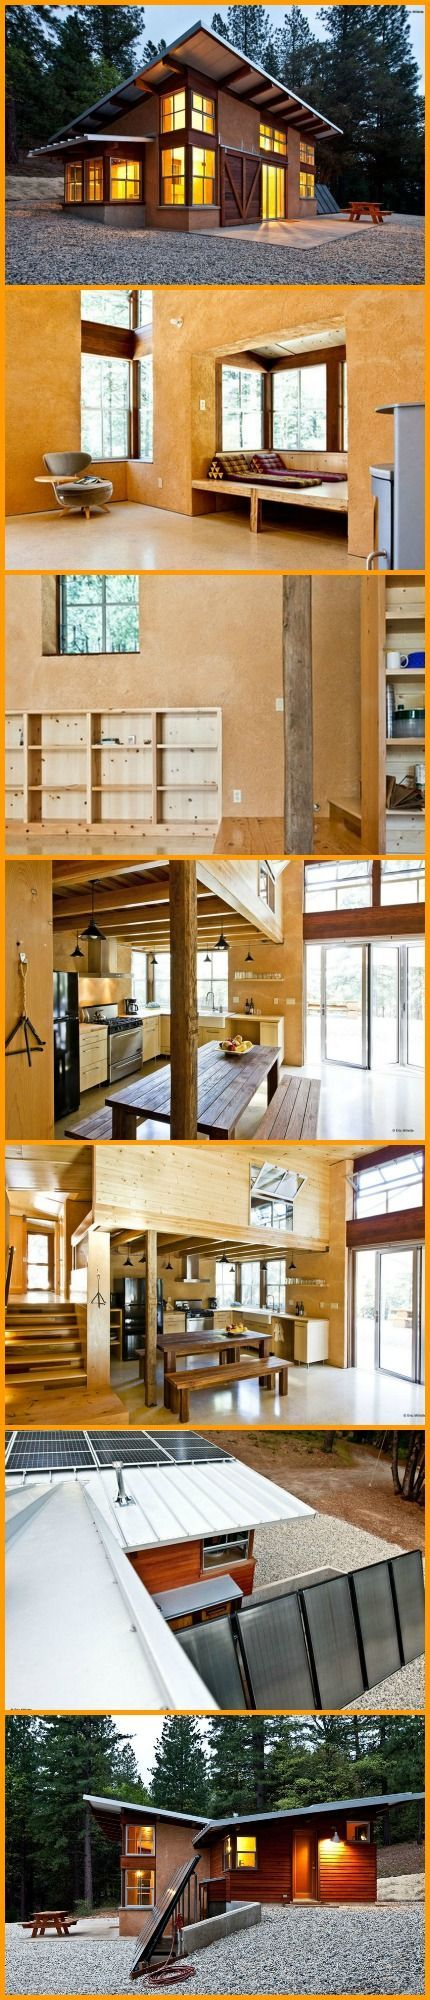 This home is a great example of sustainability and off grid living! View the complete album at theownerbuilderne...